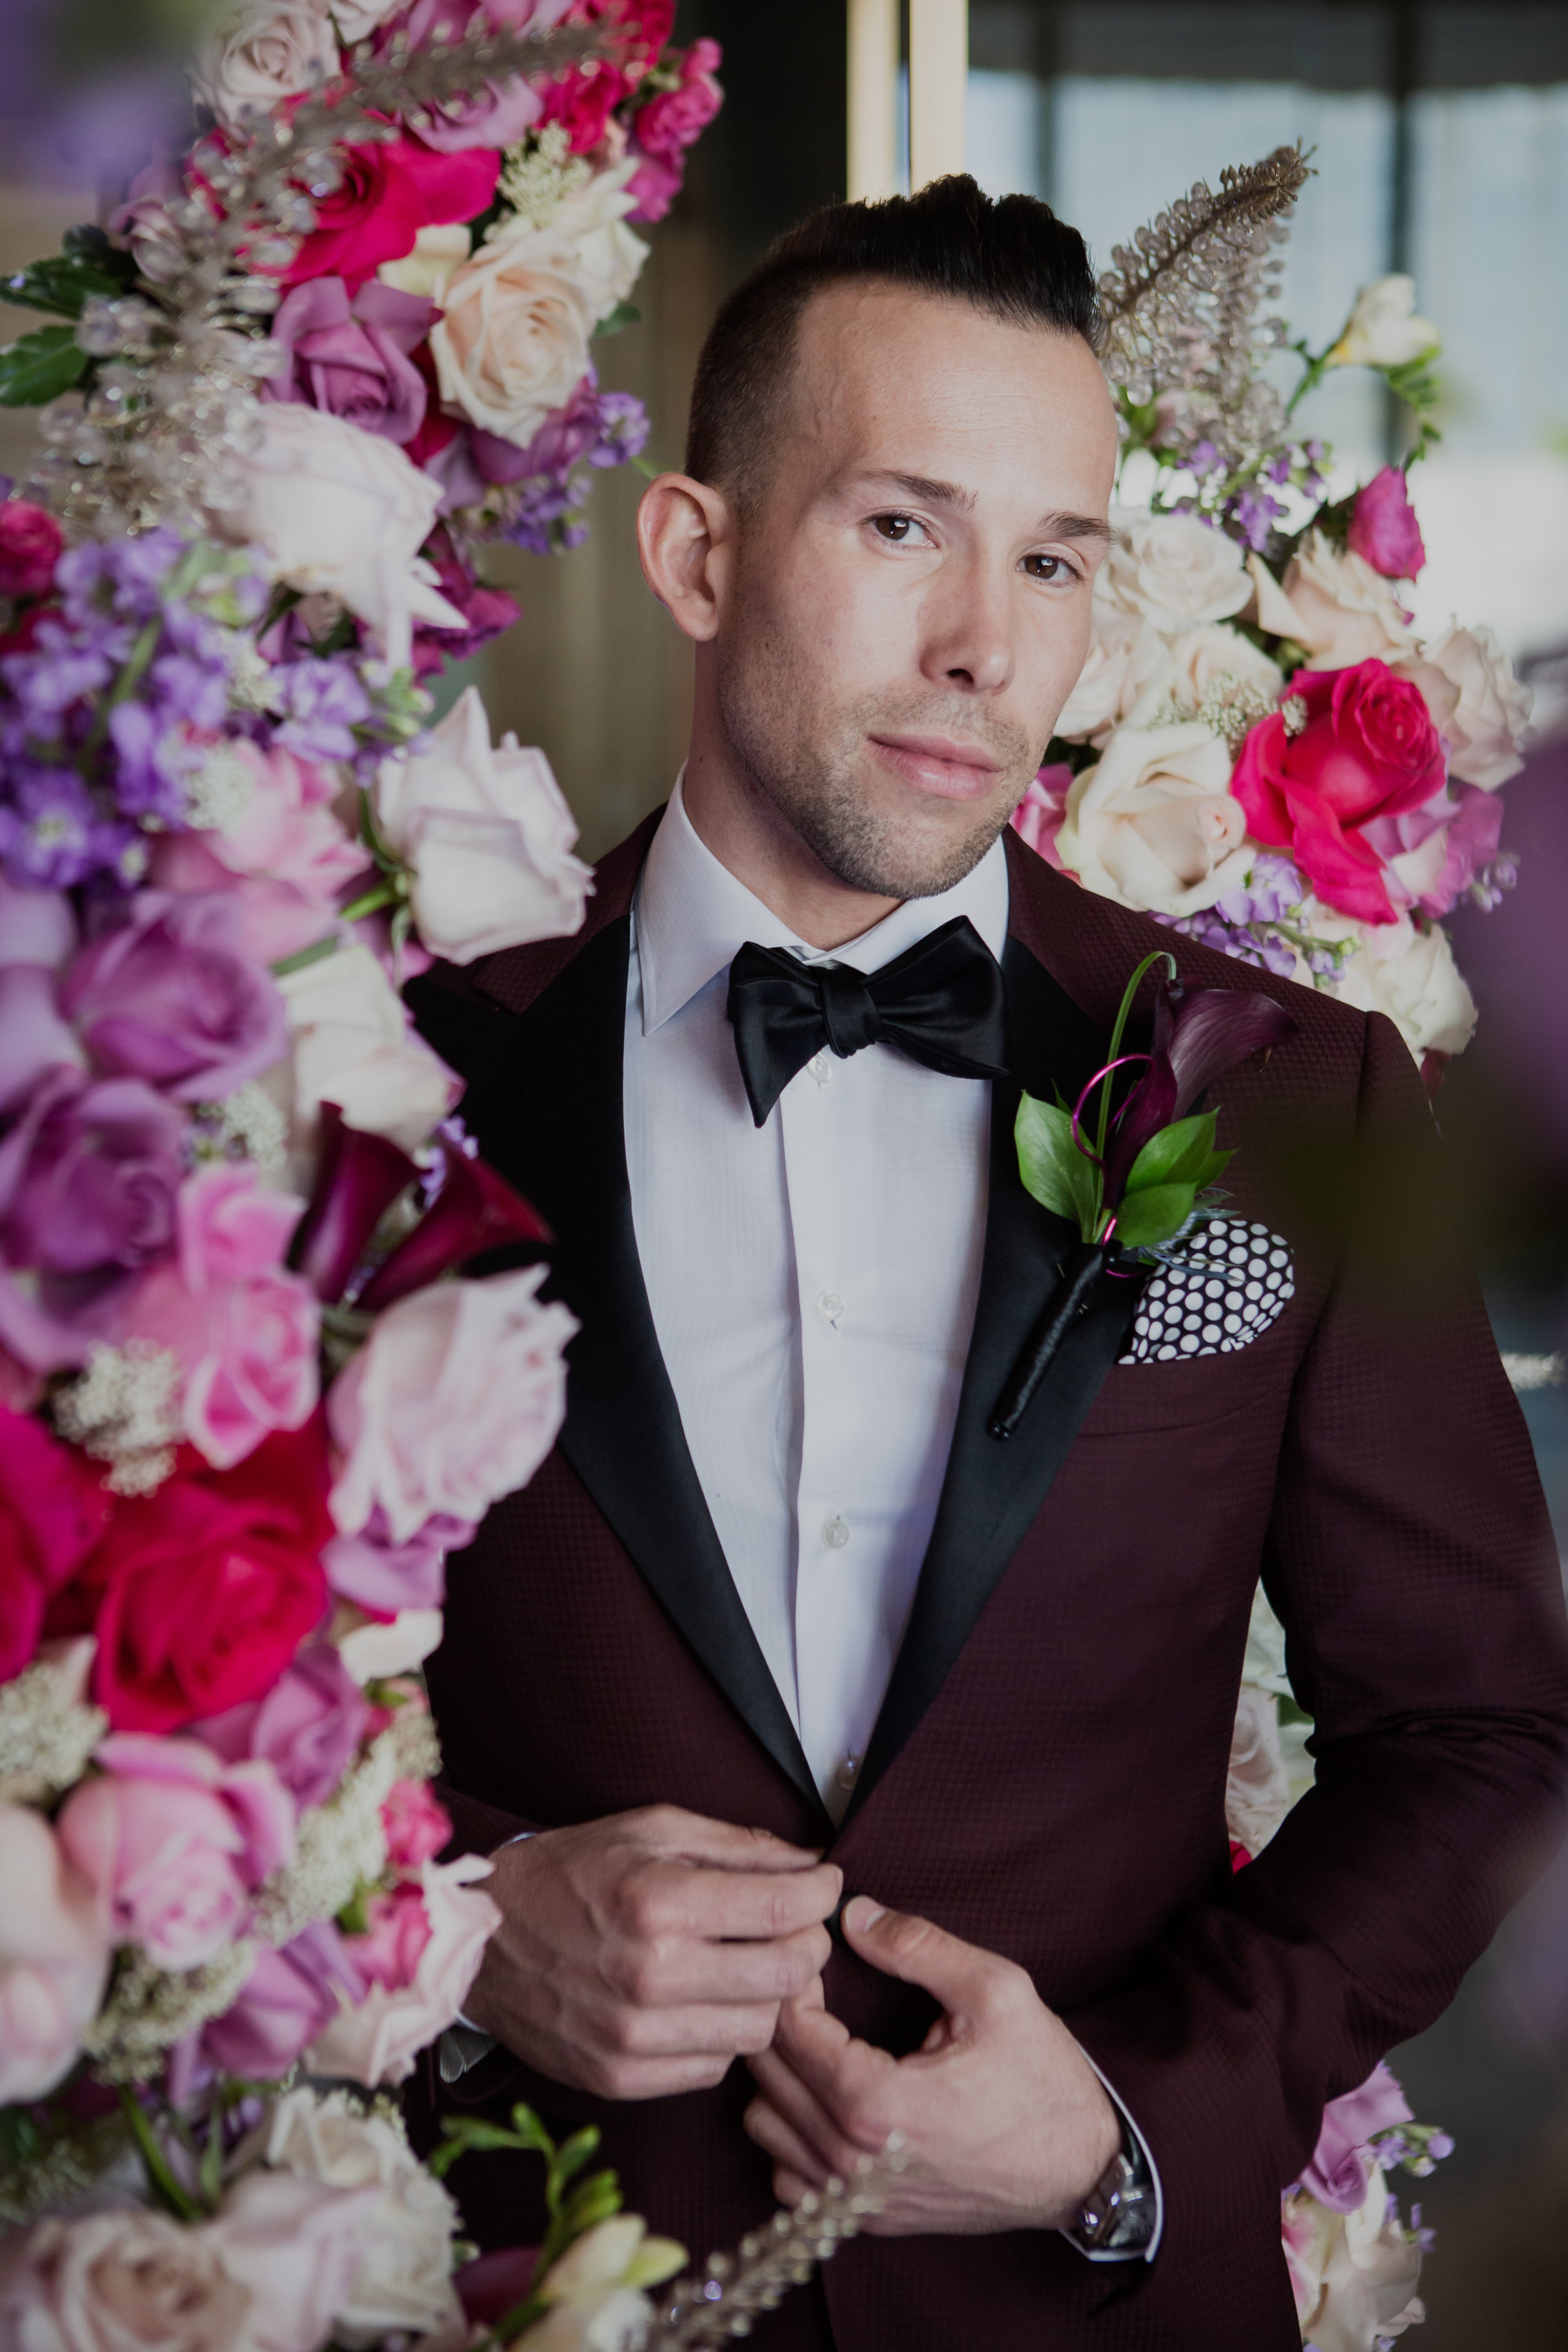 Groom in custom maroon tuxedo by Stitched. Las Vegas Wedding Planner & Event Designer  Andrea Eppolito Events  · Photography by  Adam Frazier Photo  · Video by  M Place Productions  · Floral & Decor by  DBD Las Vegas  · Venue  ARIA Primrose Ballroom  · Cigar Band by  Royal Cigar Company  and  Jason of Beverly Hills  · Beauty by  Glammed Up Las Vegas  · Dress by  Vera Wang  · Salon  Couture Bride Las Vegas  · Shoes  Bella Belle Shoes  · Bride  Katrina May Armenta  · Groom  Lucas Cuevas